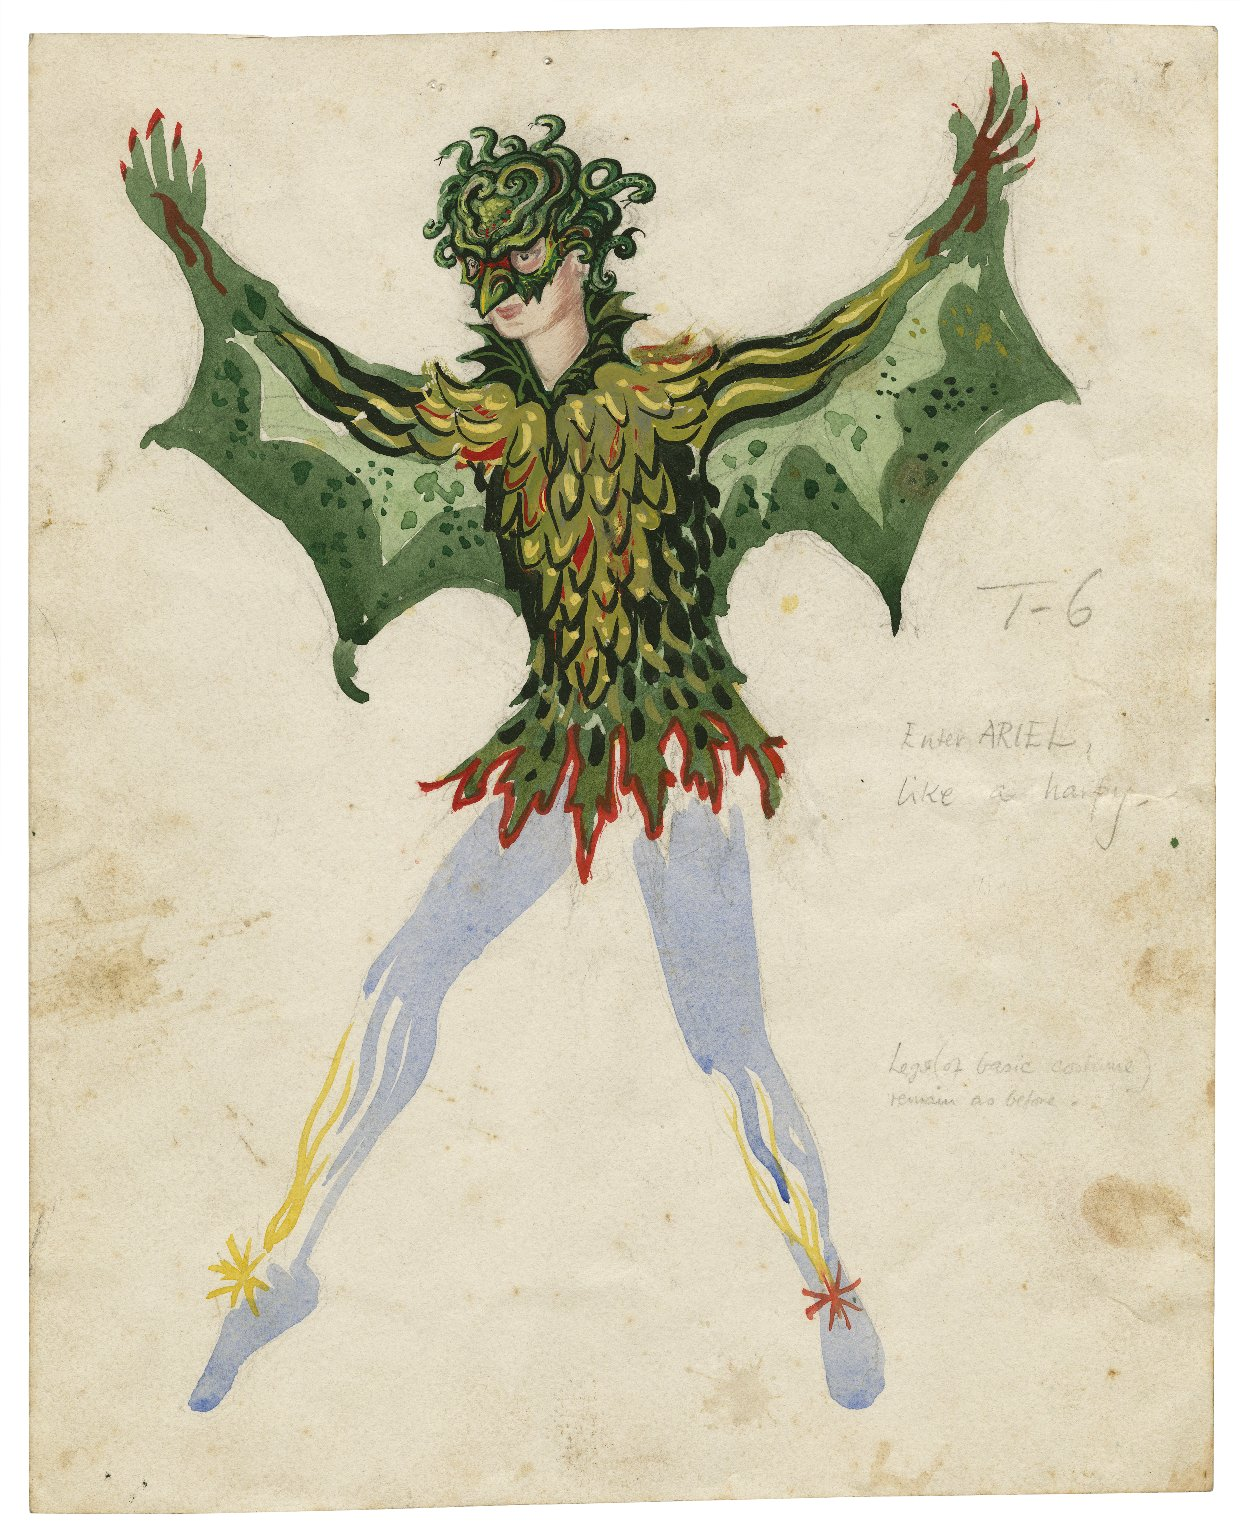 Costume for Ariel as Harpy, the Tempest